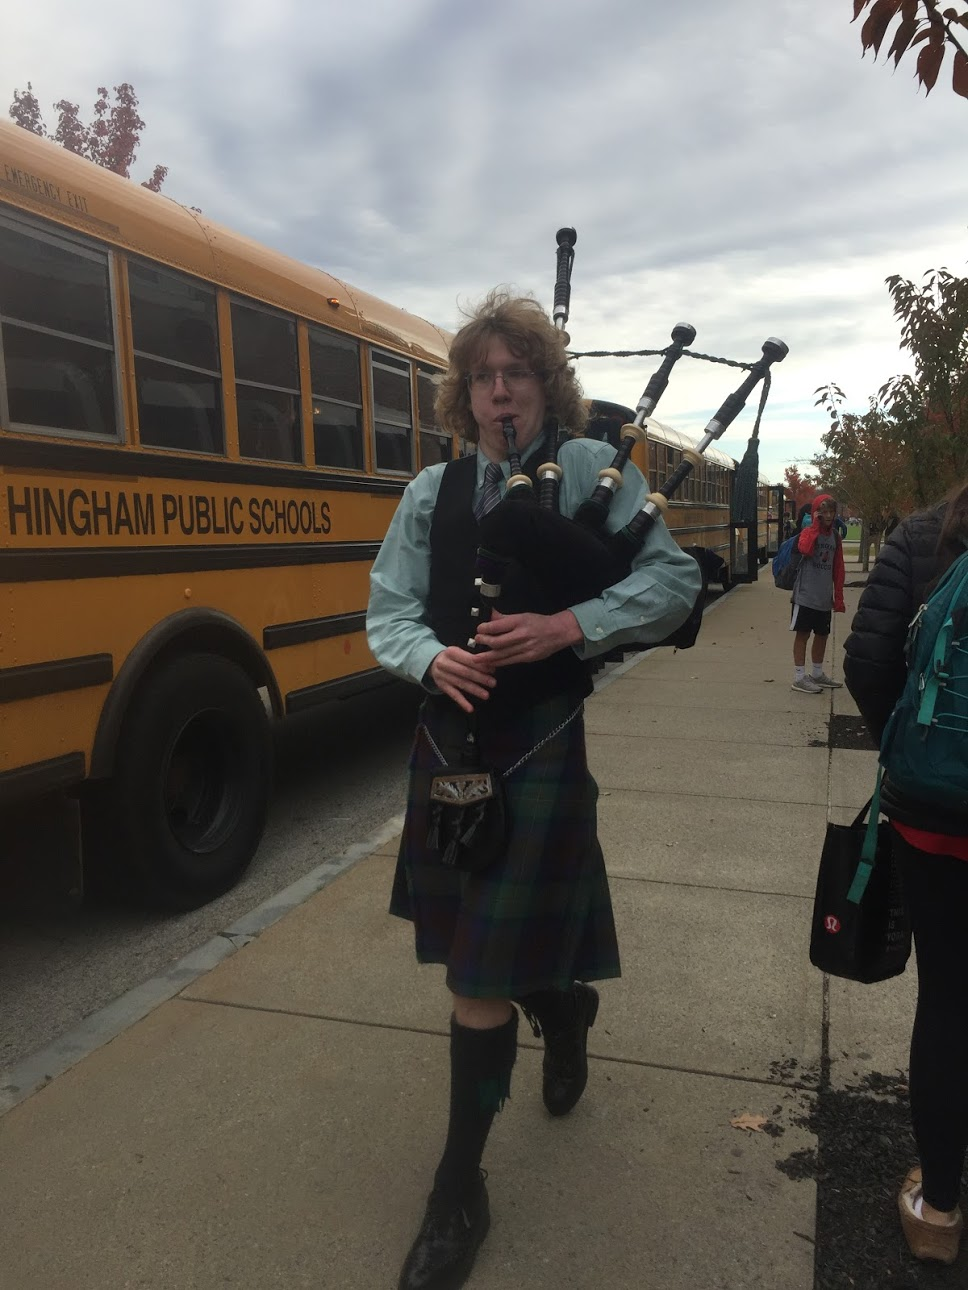 Junior Lucas Webber went all out for his Halloween costume, playing the bagpipes as he walked around the school.